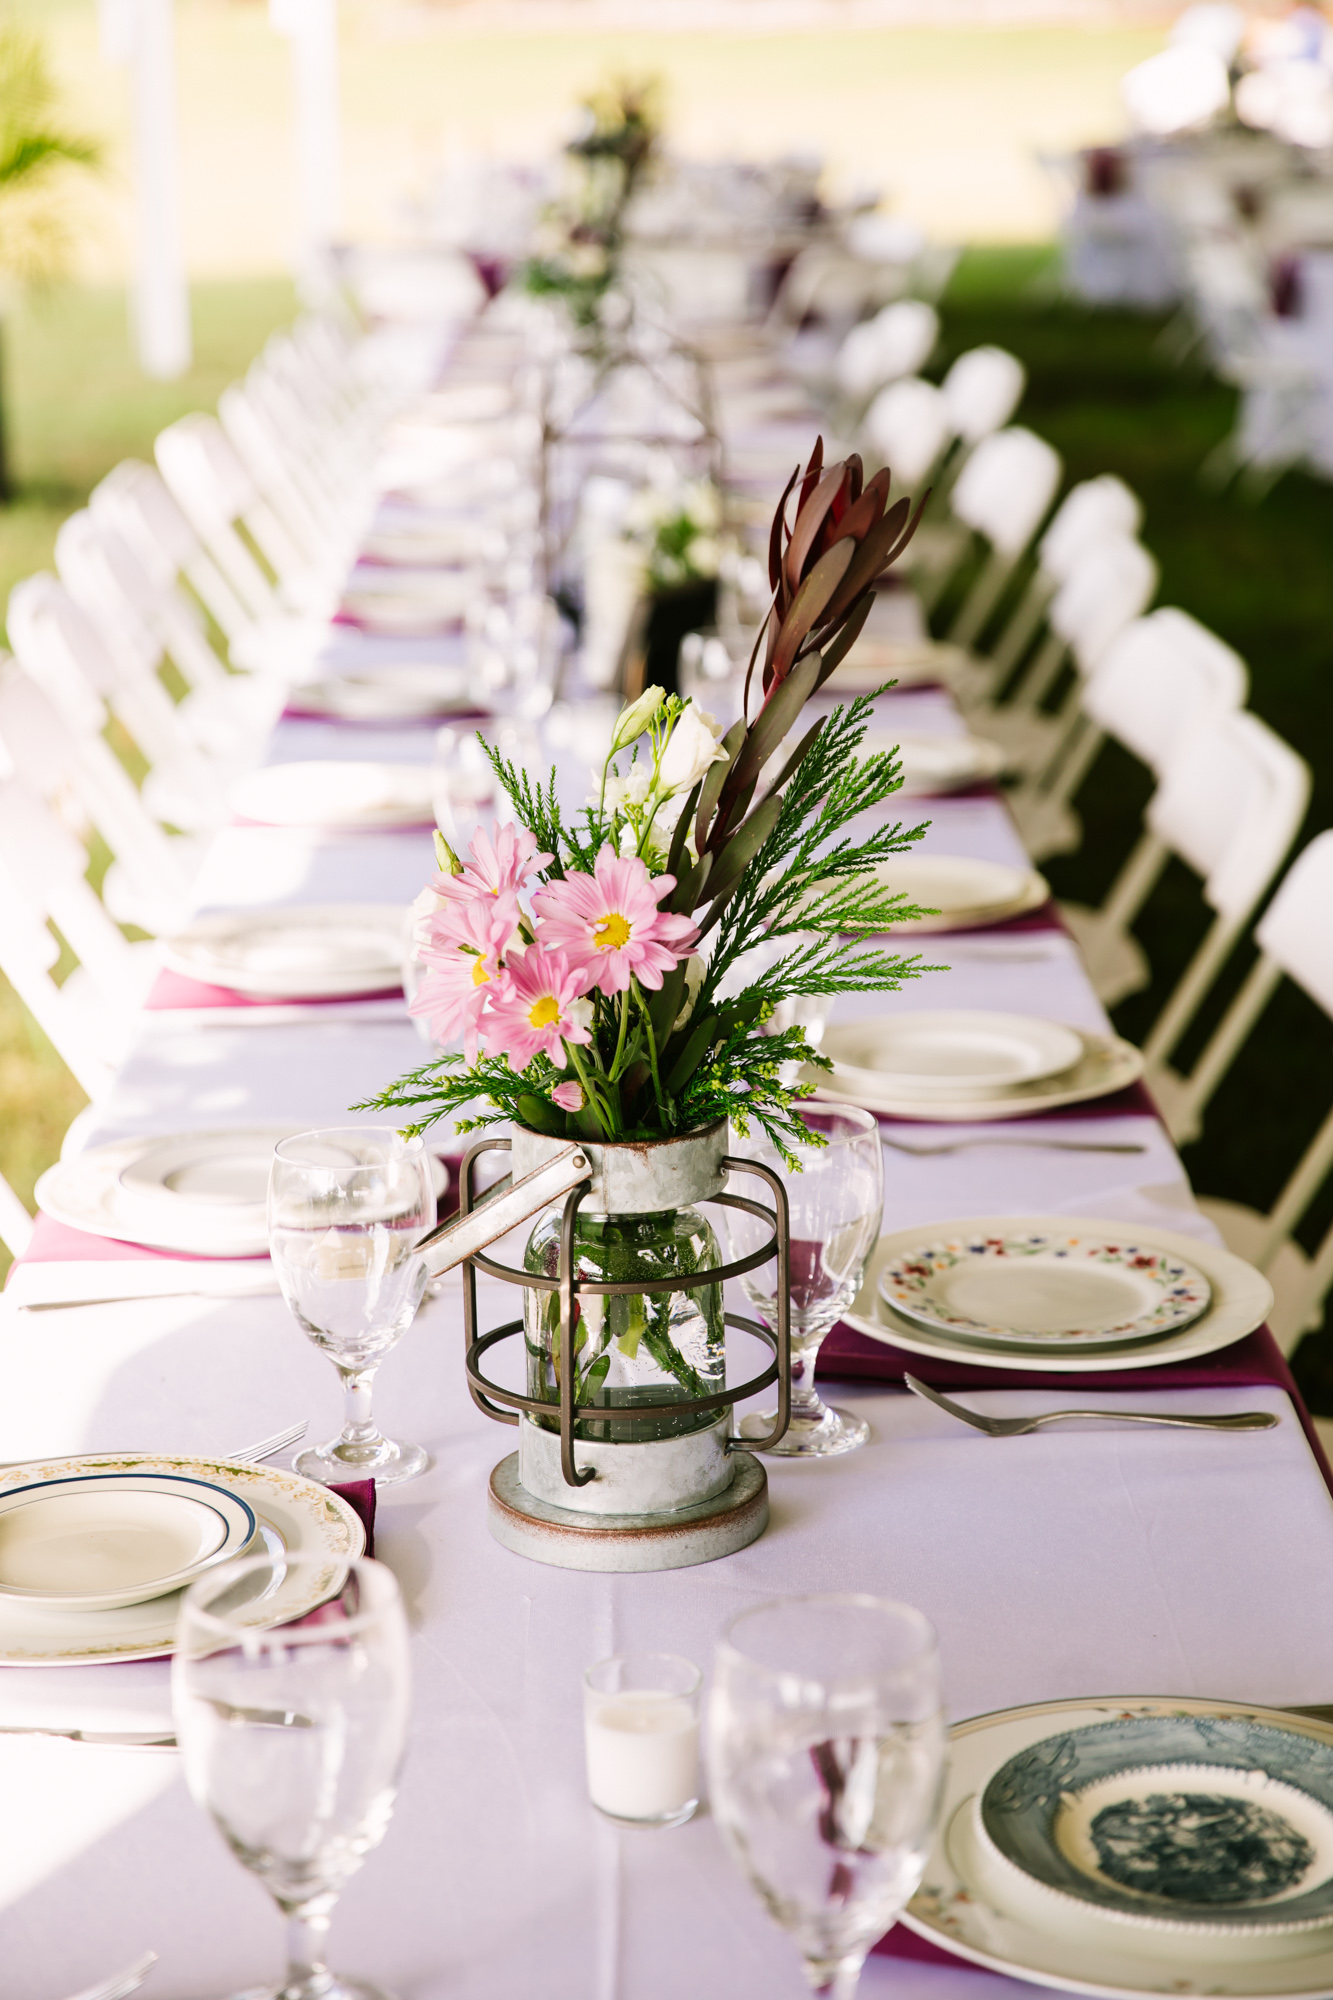 Waynesville, NC Wedding Photography | Wedding Reception Bridal Party Table Centerpiece